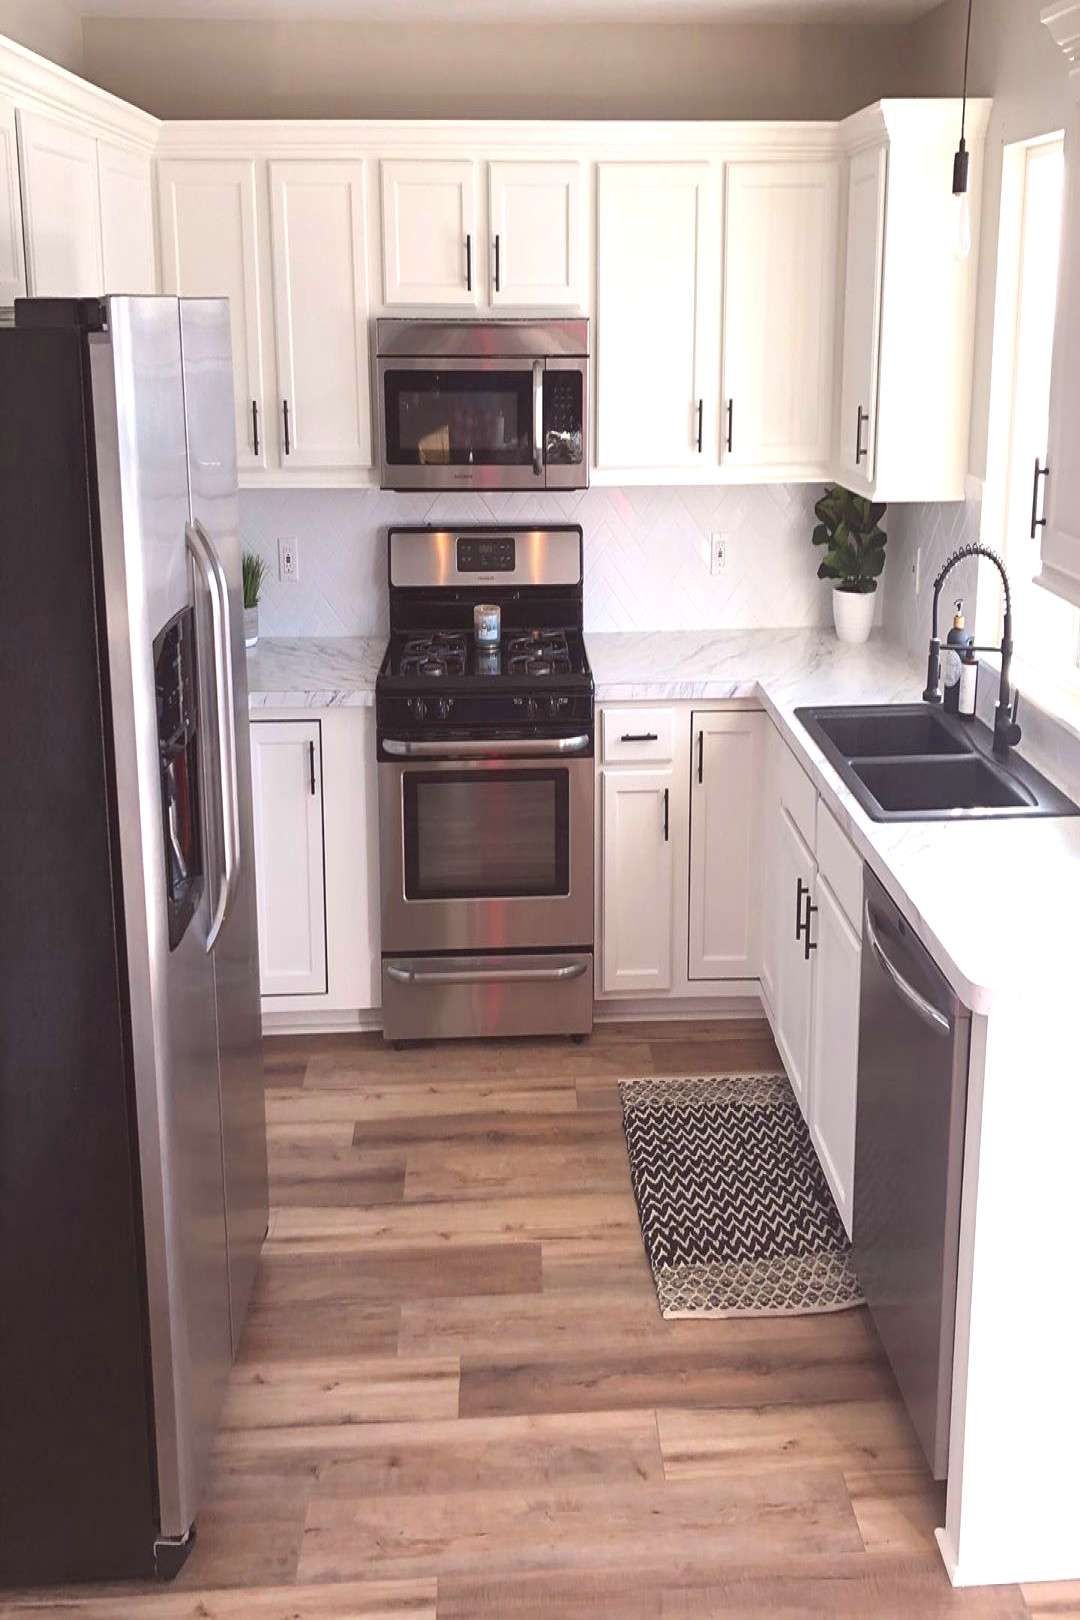 #difference #kitchen #remodel #finally #indoor #swipe #done #our #see #the #is #to #k Our kitchen remodel is finally done Swipe to see the difference kYou can find Diy kitchen and more on our website.Our kitchen remodel is final...